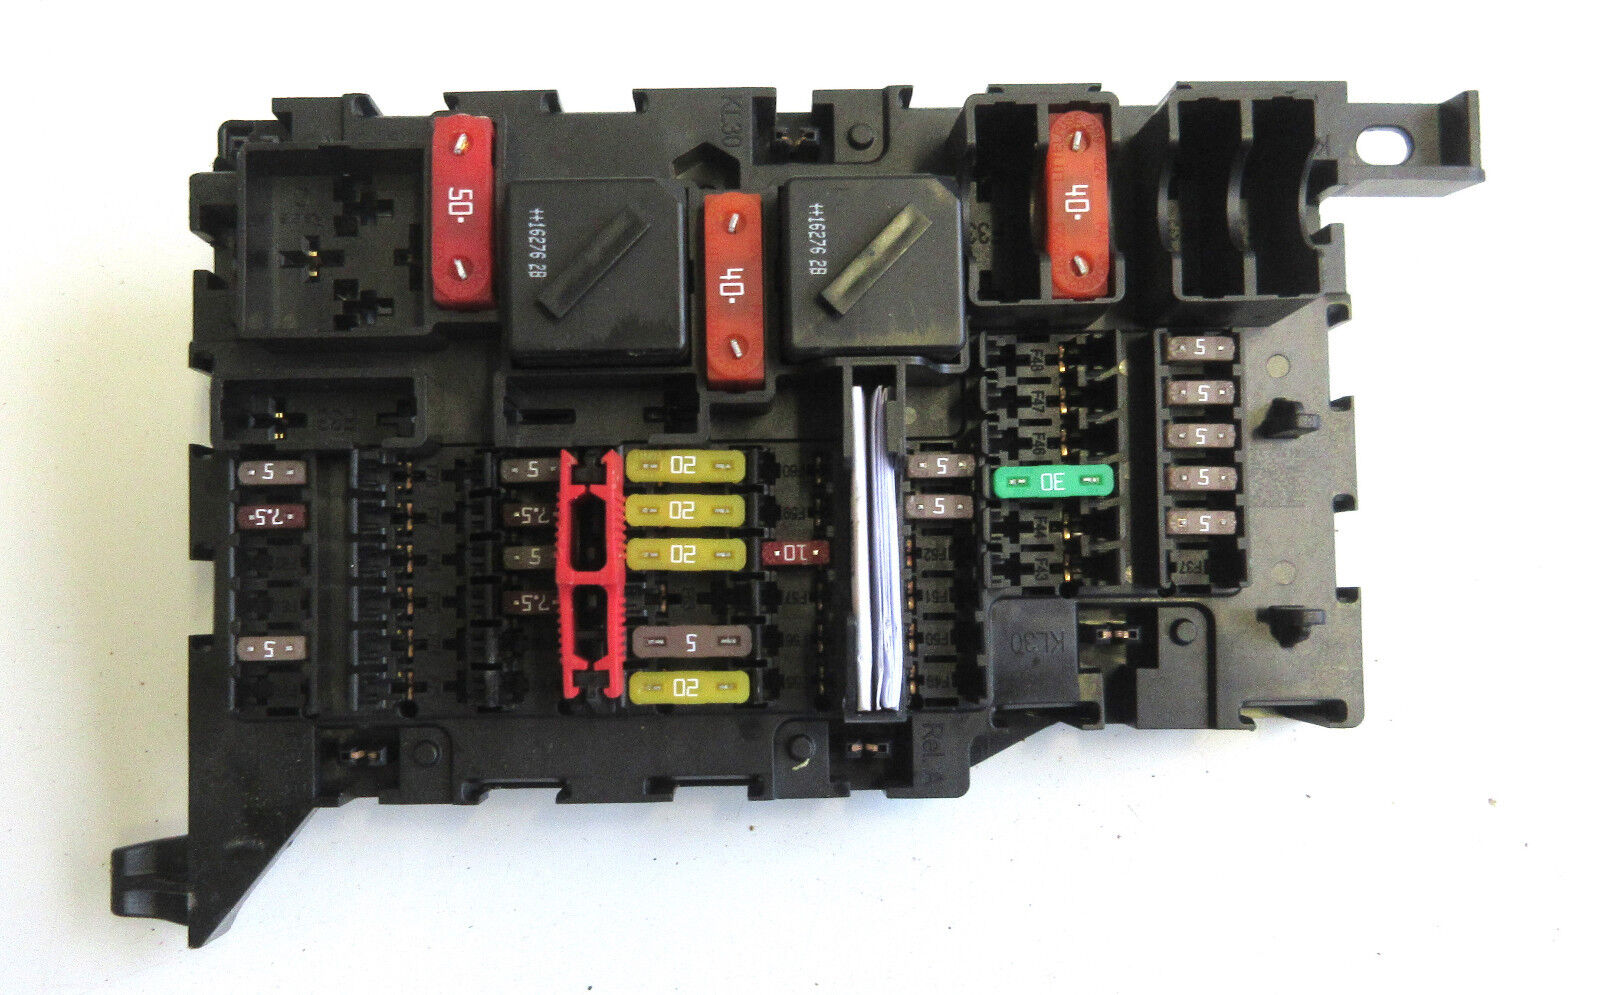 Bmw Mini Fuse Box Wiring Library Cooper Clubman Engine 2005 Automotive Parts Solutions Starter Motor 1 Of 5only 4 Available